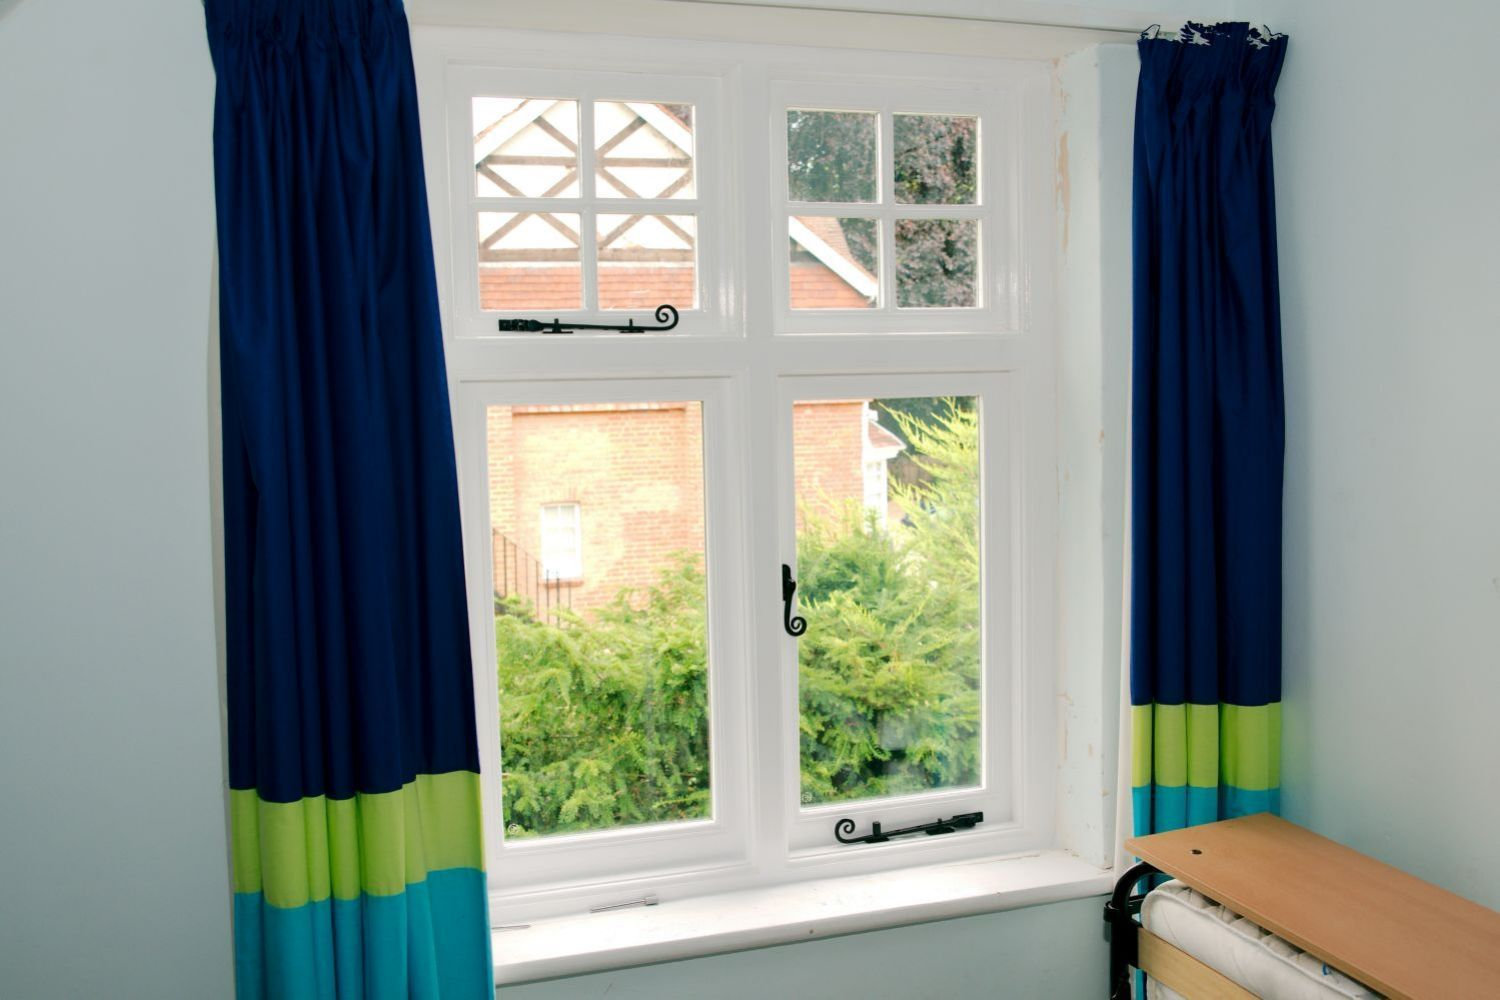 sash casement windows london(8)